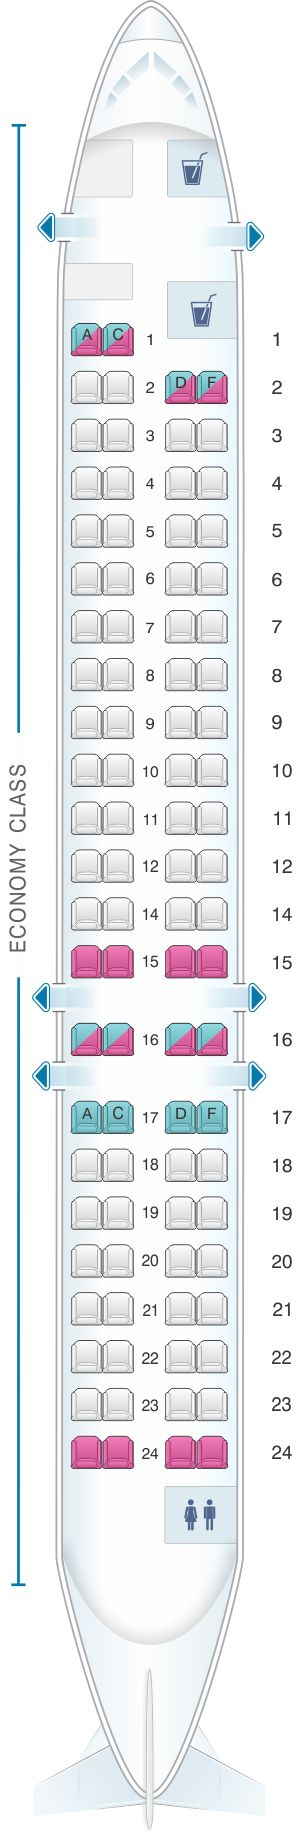 Seat Map Iberia Regional – Air Nostrum CRJ 900